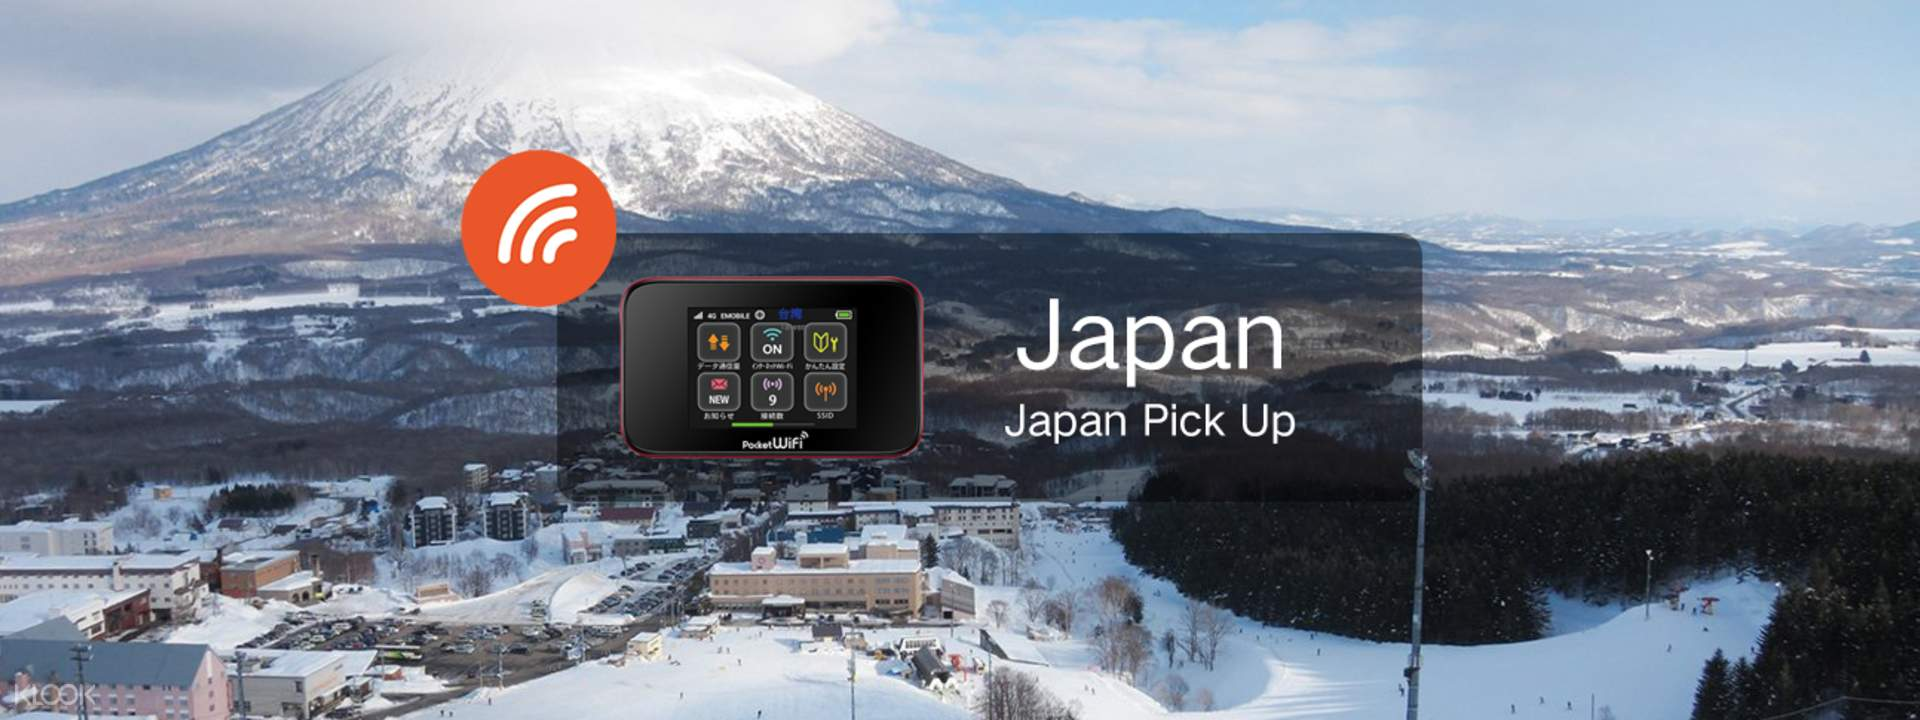 4G WiFi (CTS Airport Pick Up) for Japan - Klook